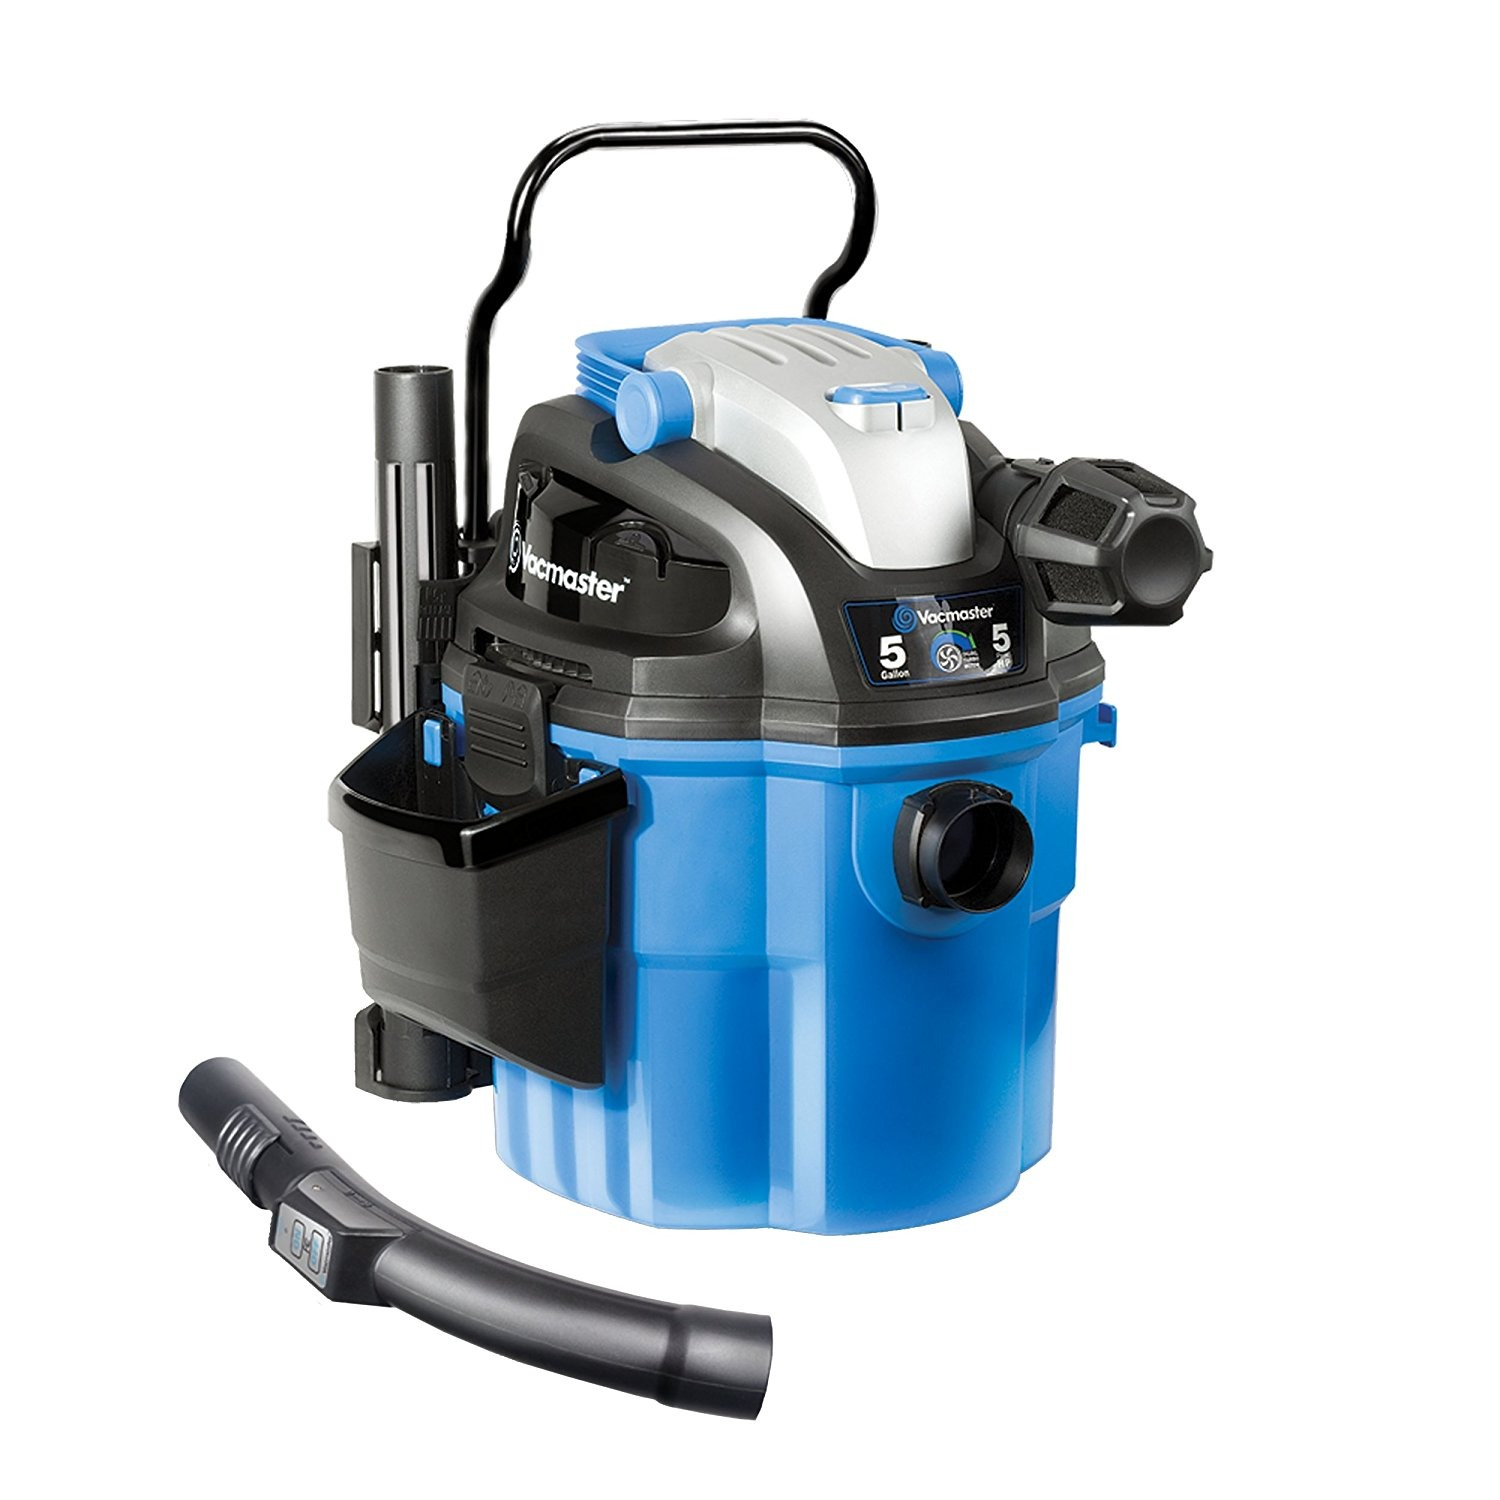 Vacmaster 5 Gallon Car Vacuum